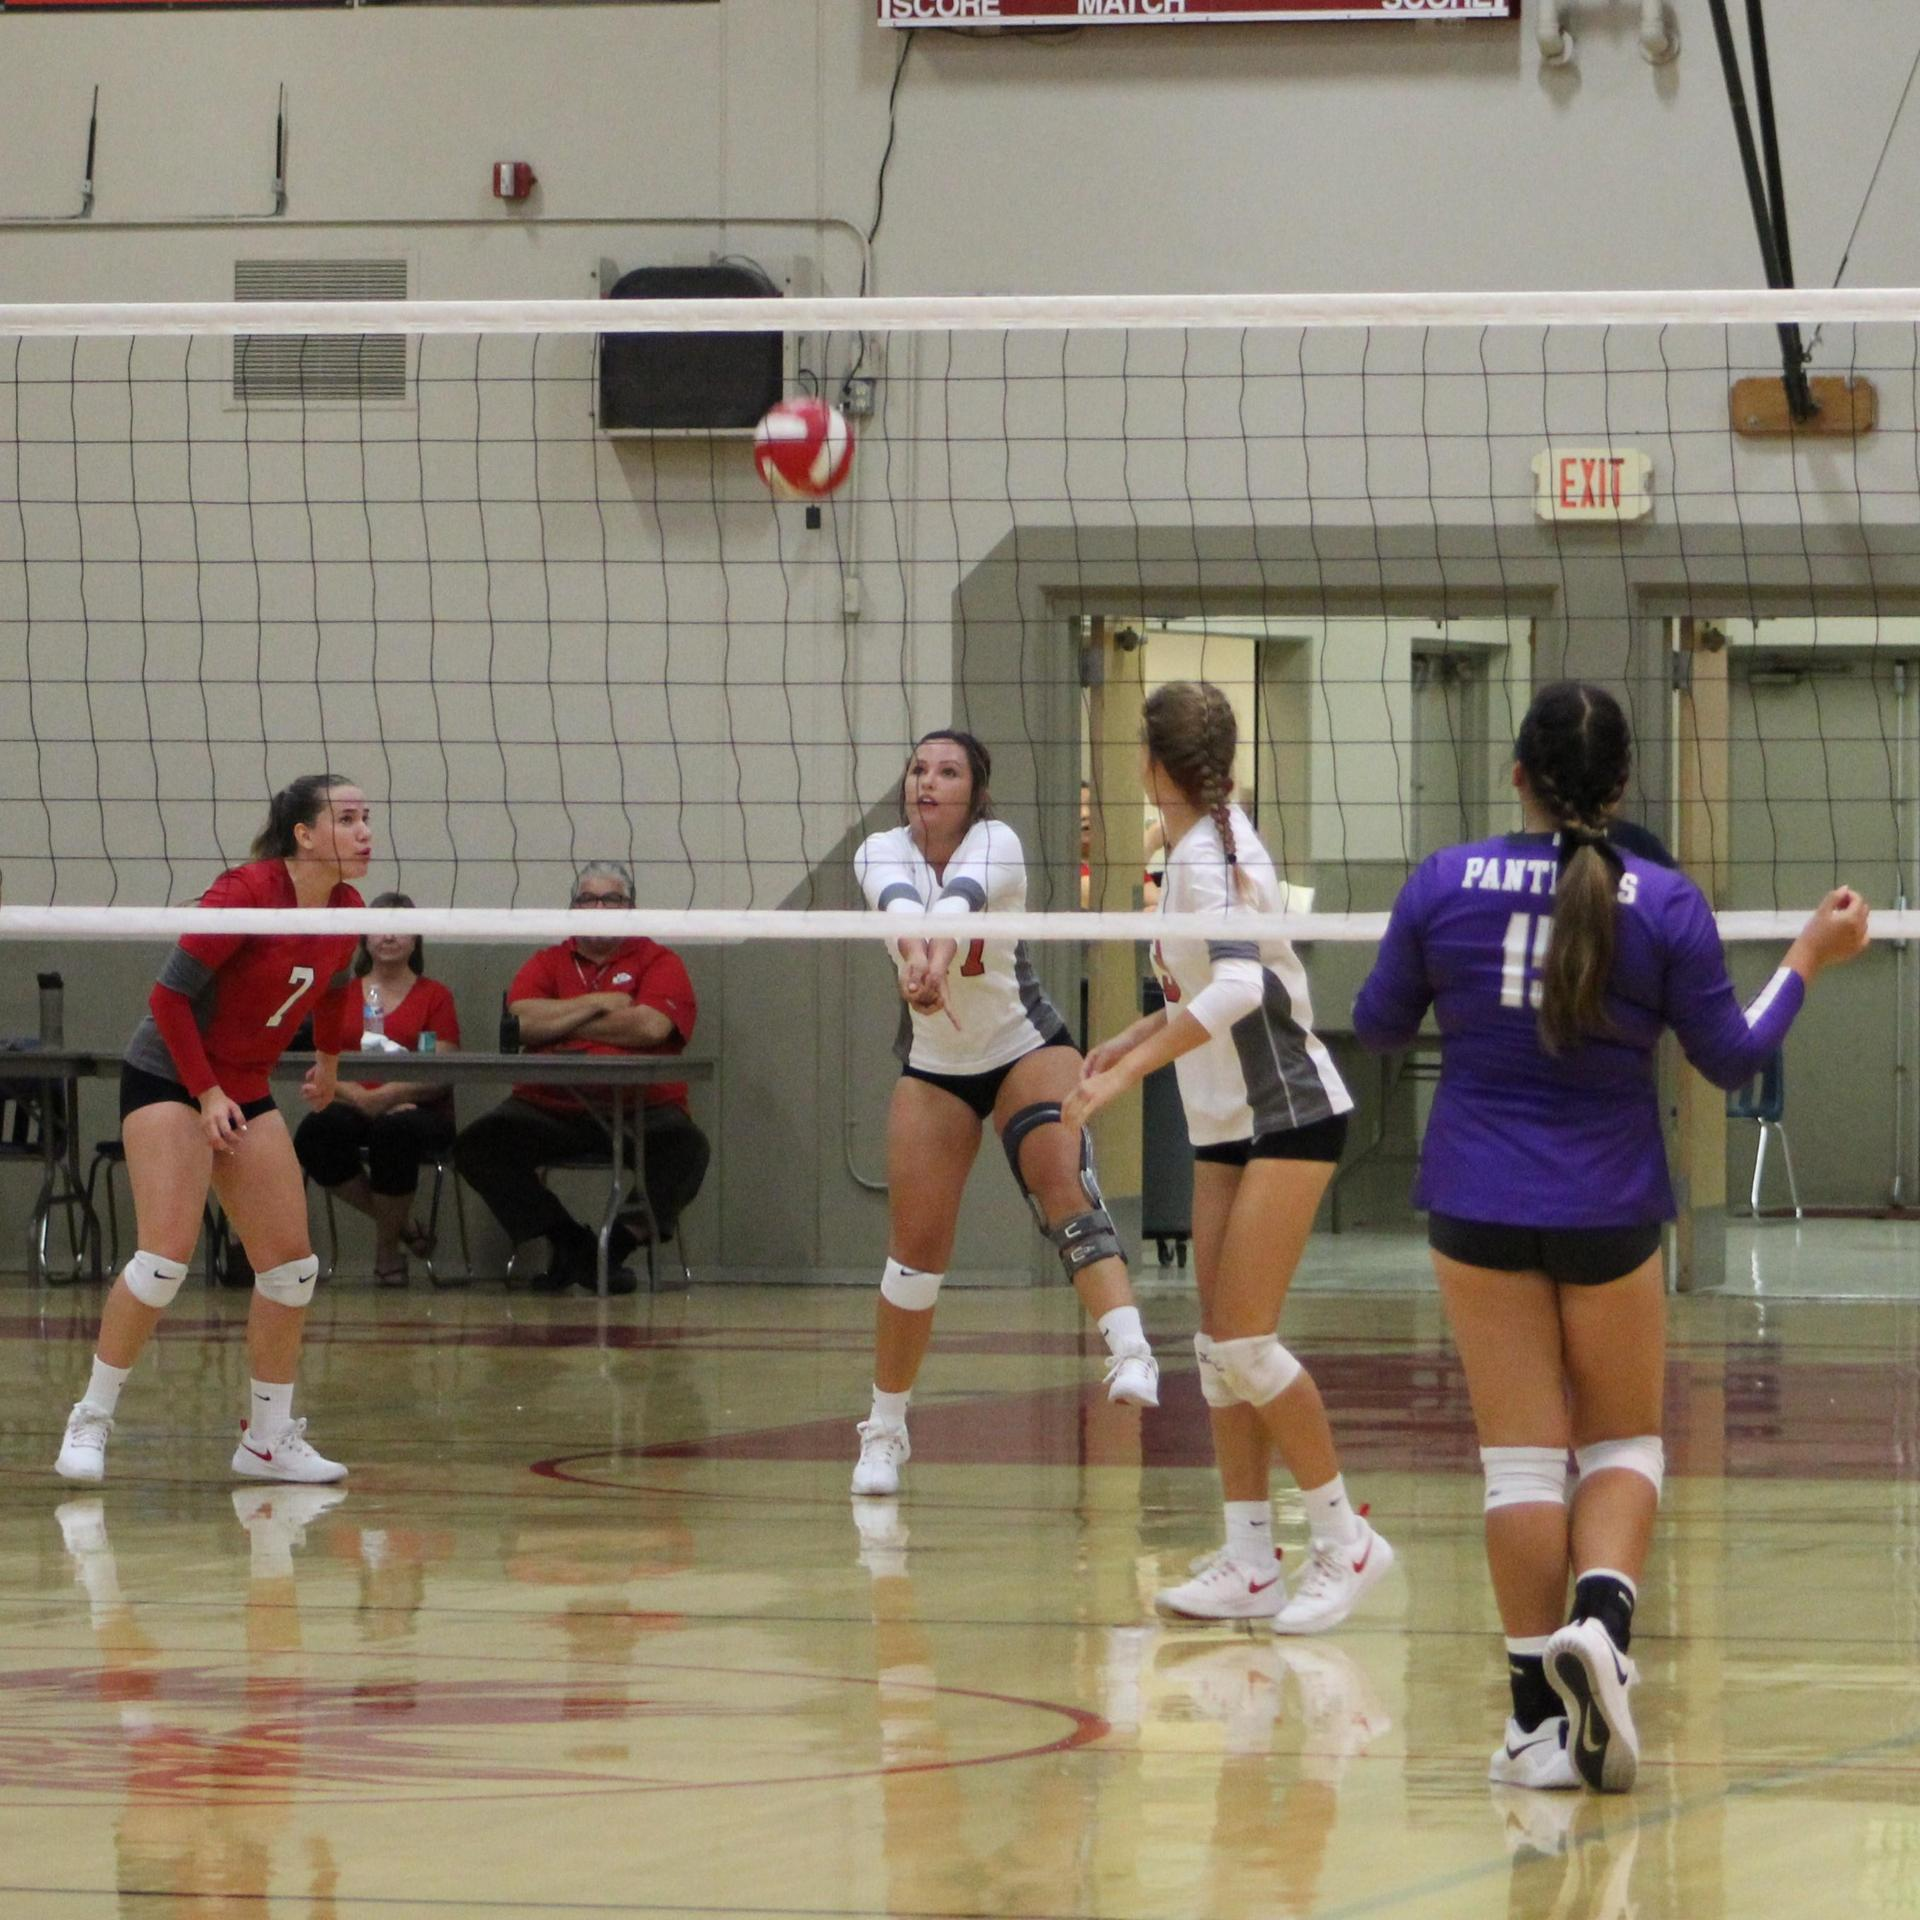 varsity girls playing volleyball against Washington Union